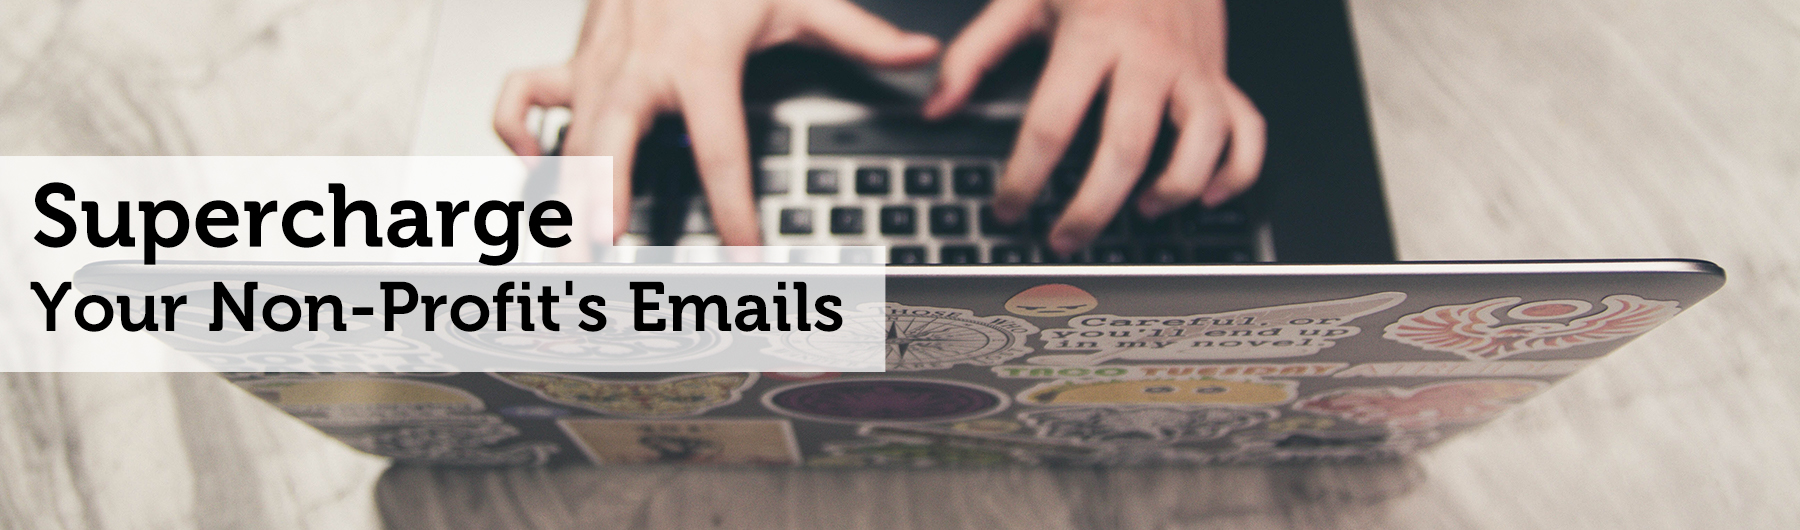 Apr 2019: Email Masterclass - Supercharge Your Non-Profit's Emails